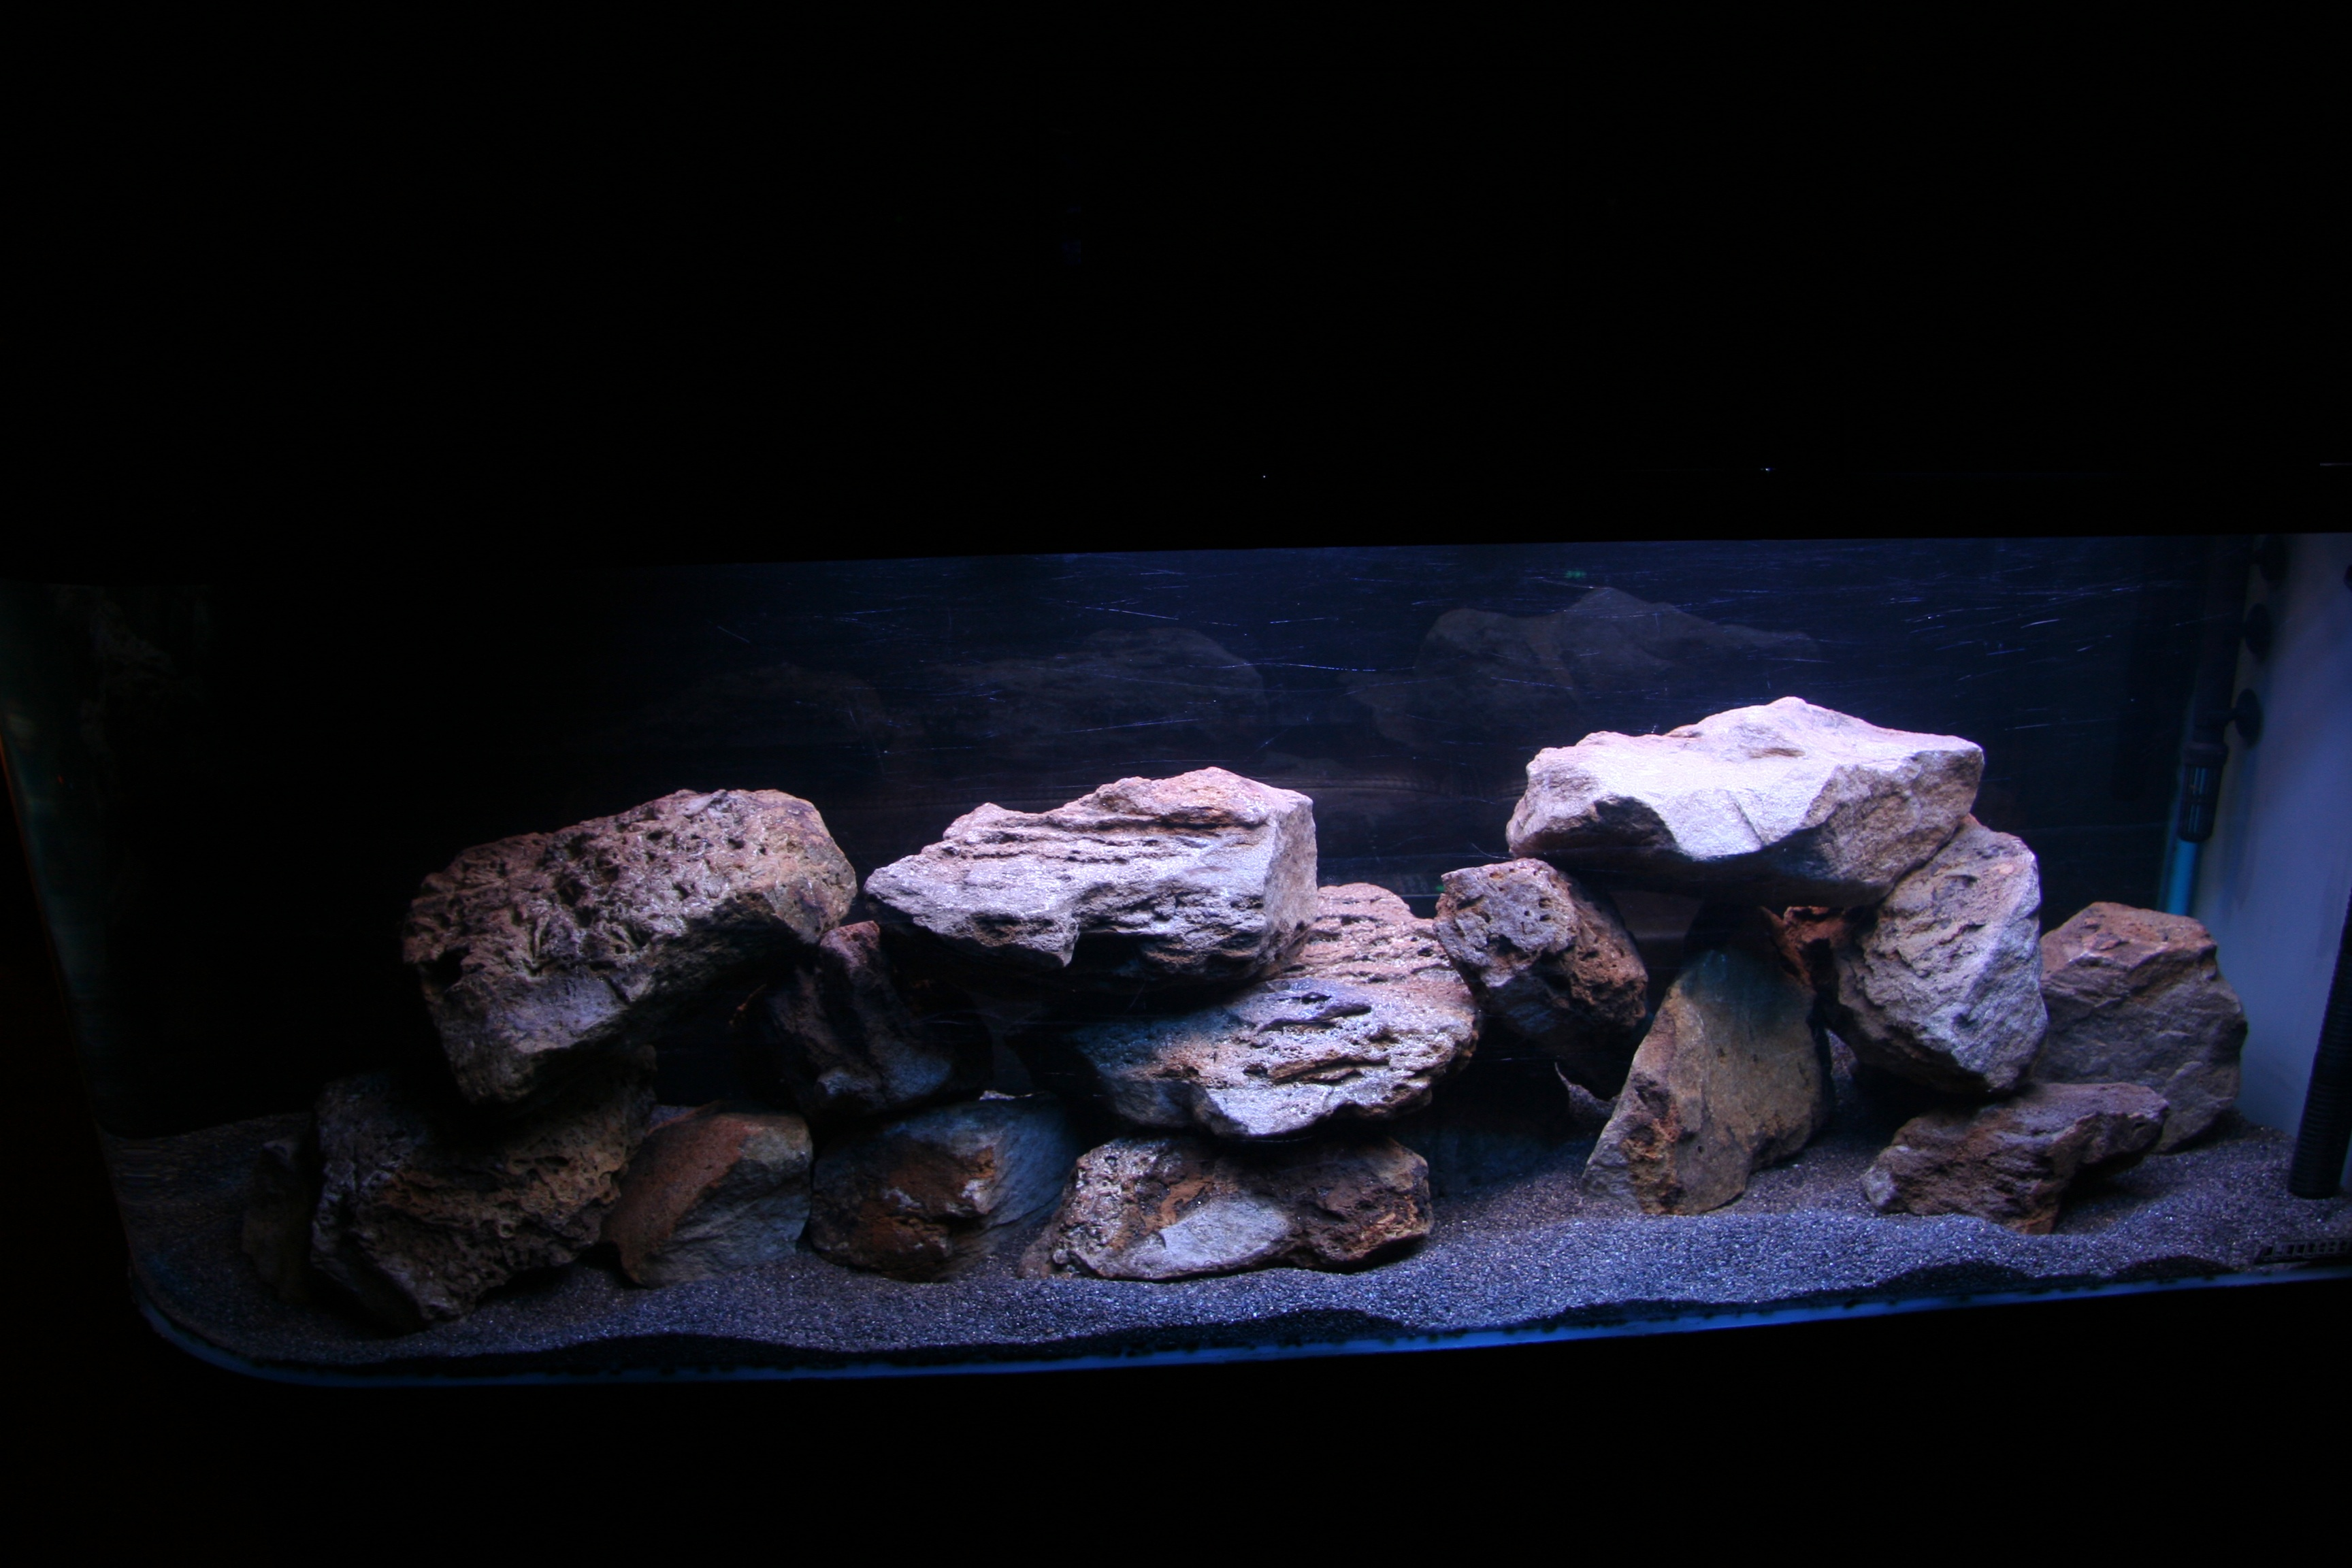 Long finned Oscar as well 298317 Strange Reaction To A New Addition as well Collectionbdwn Black Discus Fish moreover Viewtopic likewise Oscars Tank. on oscar cichlid forum